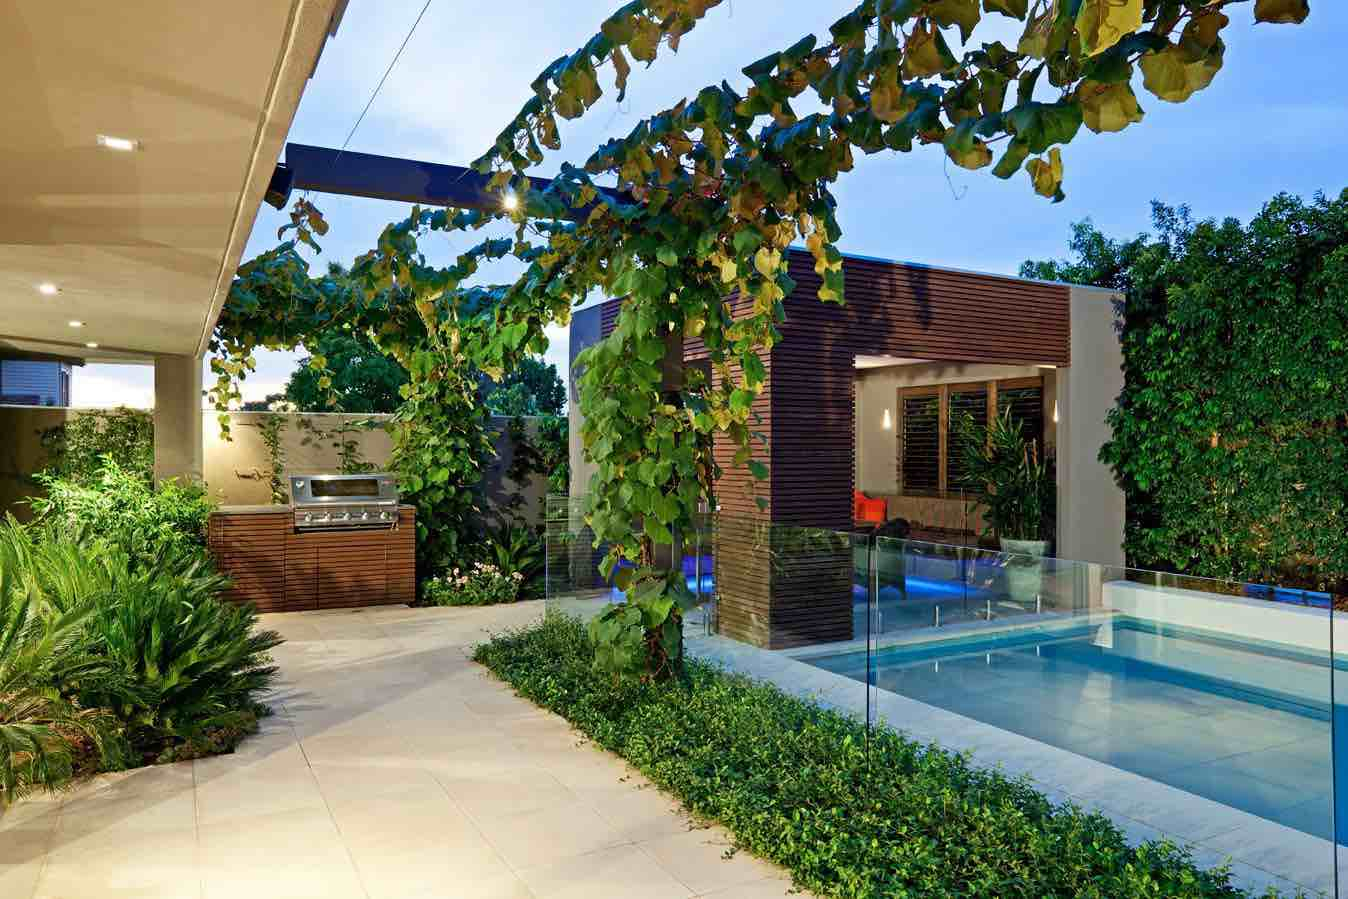 Yard Design Ideas 20 sloped backyard design ideas httpwwwdesignrulzcomdesign Small Backyard Home Design Idea